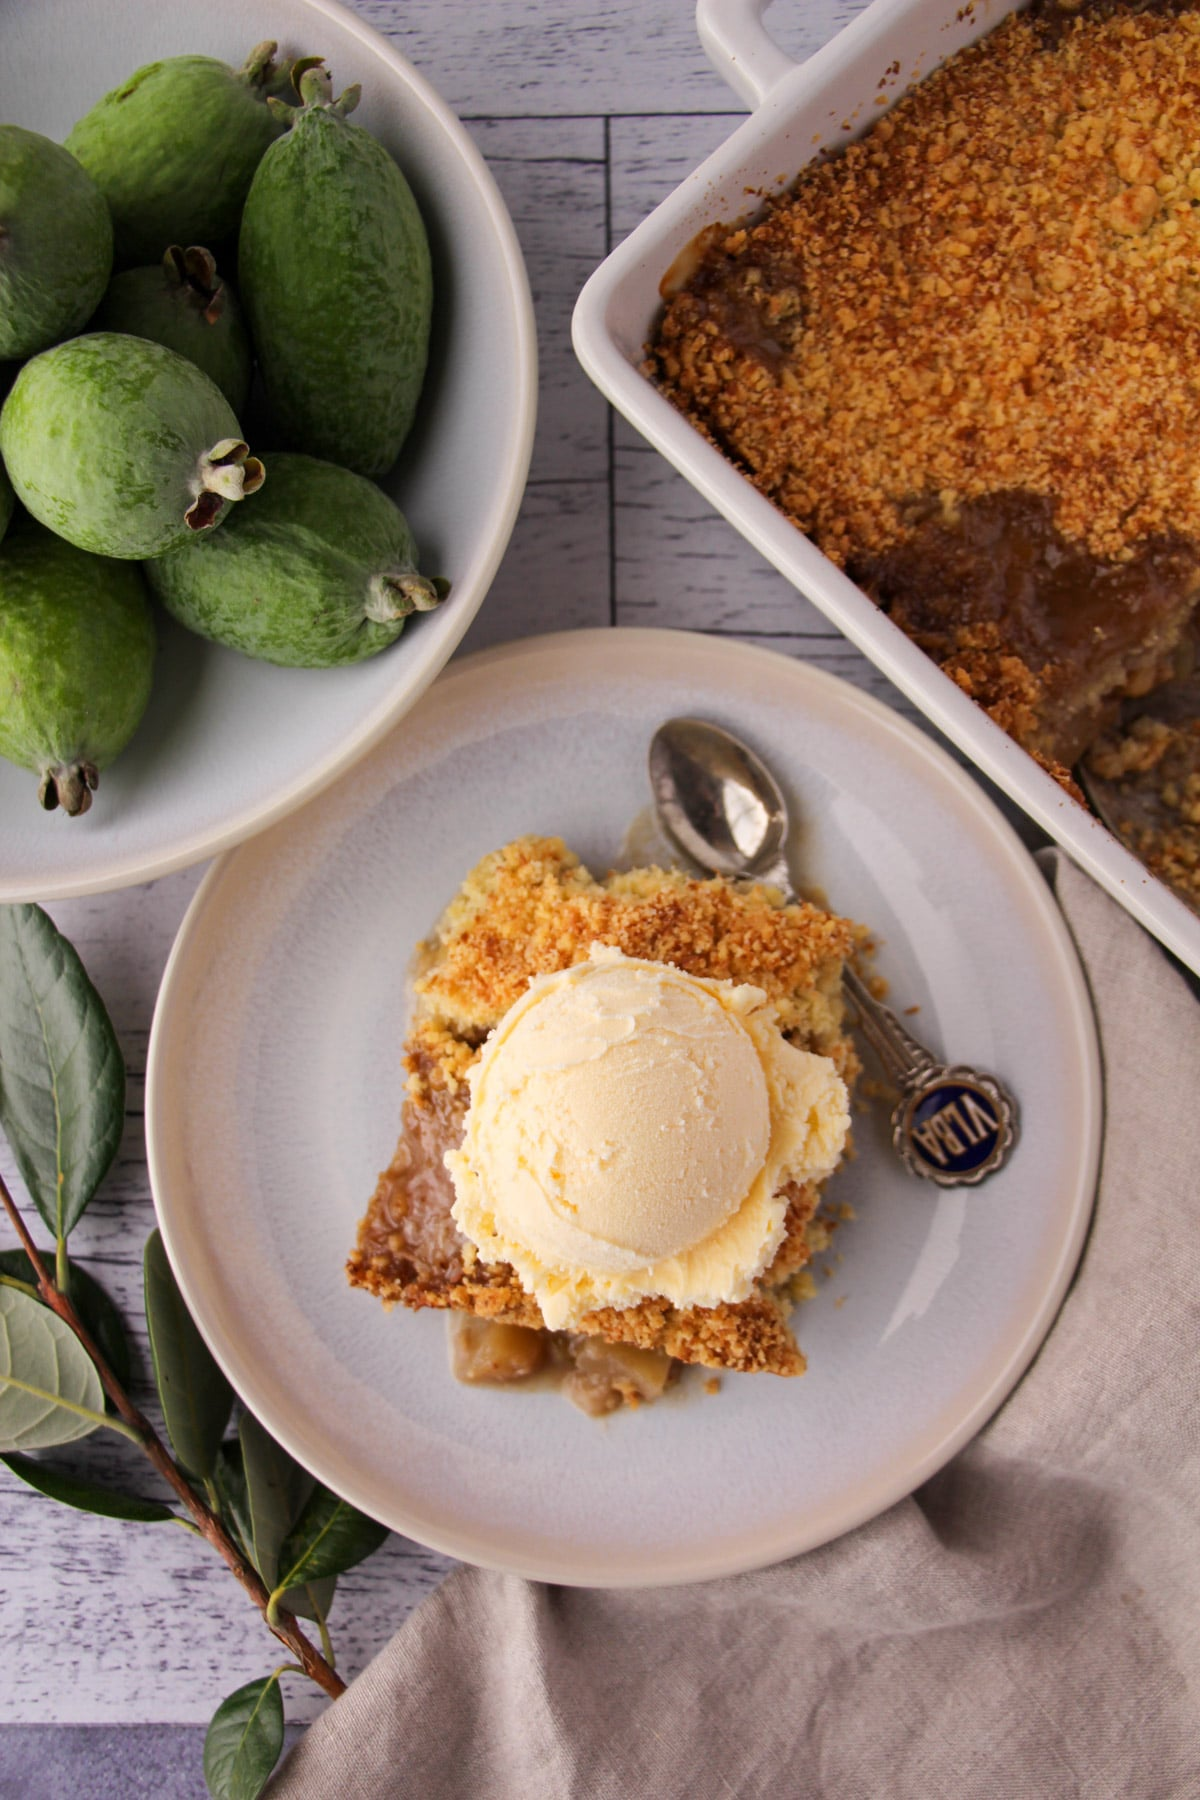 Feijoa crumble on a plate with a scoop of ice cream on top, vintage spoon on the side and fresh feijoas and baking dish of crumble on the sides.